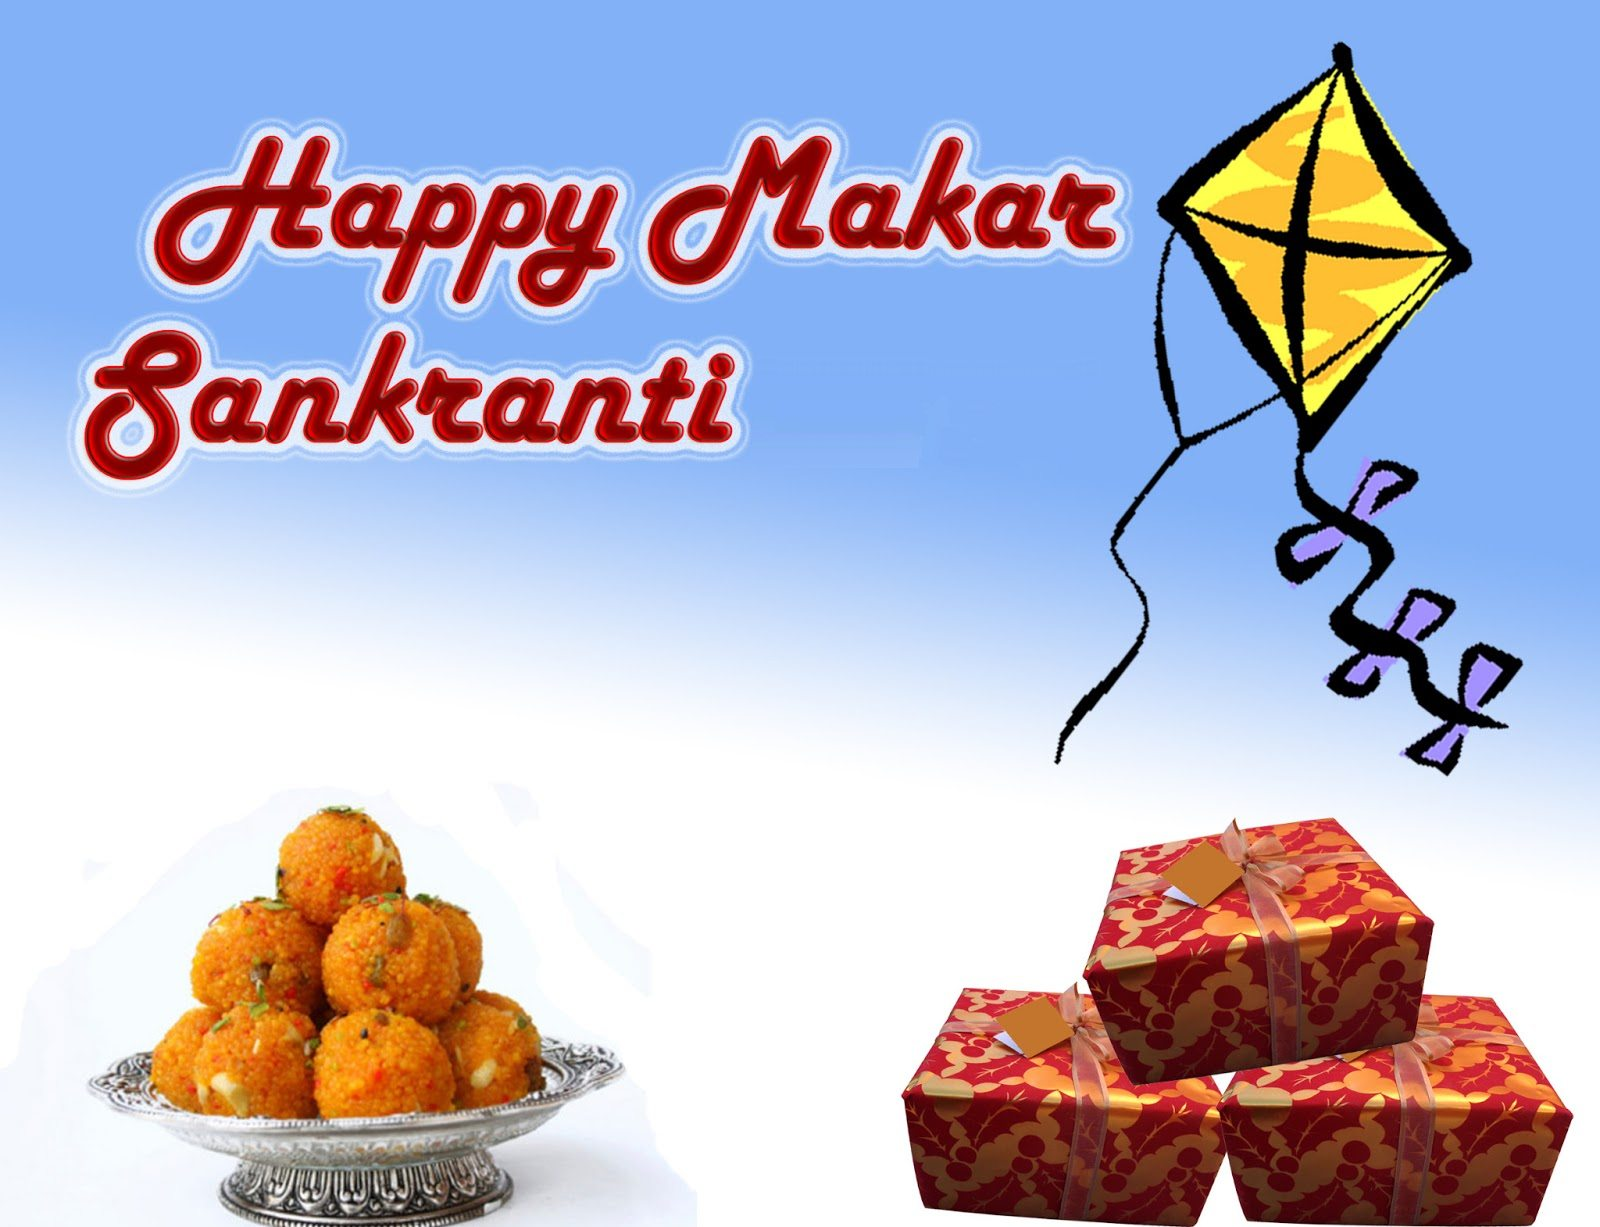 Makar Sankranti The Indian Harvest Festival Charus Cuisine